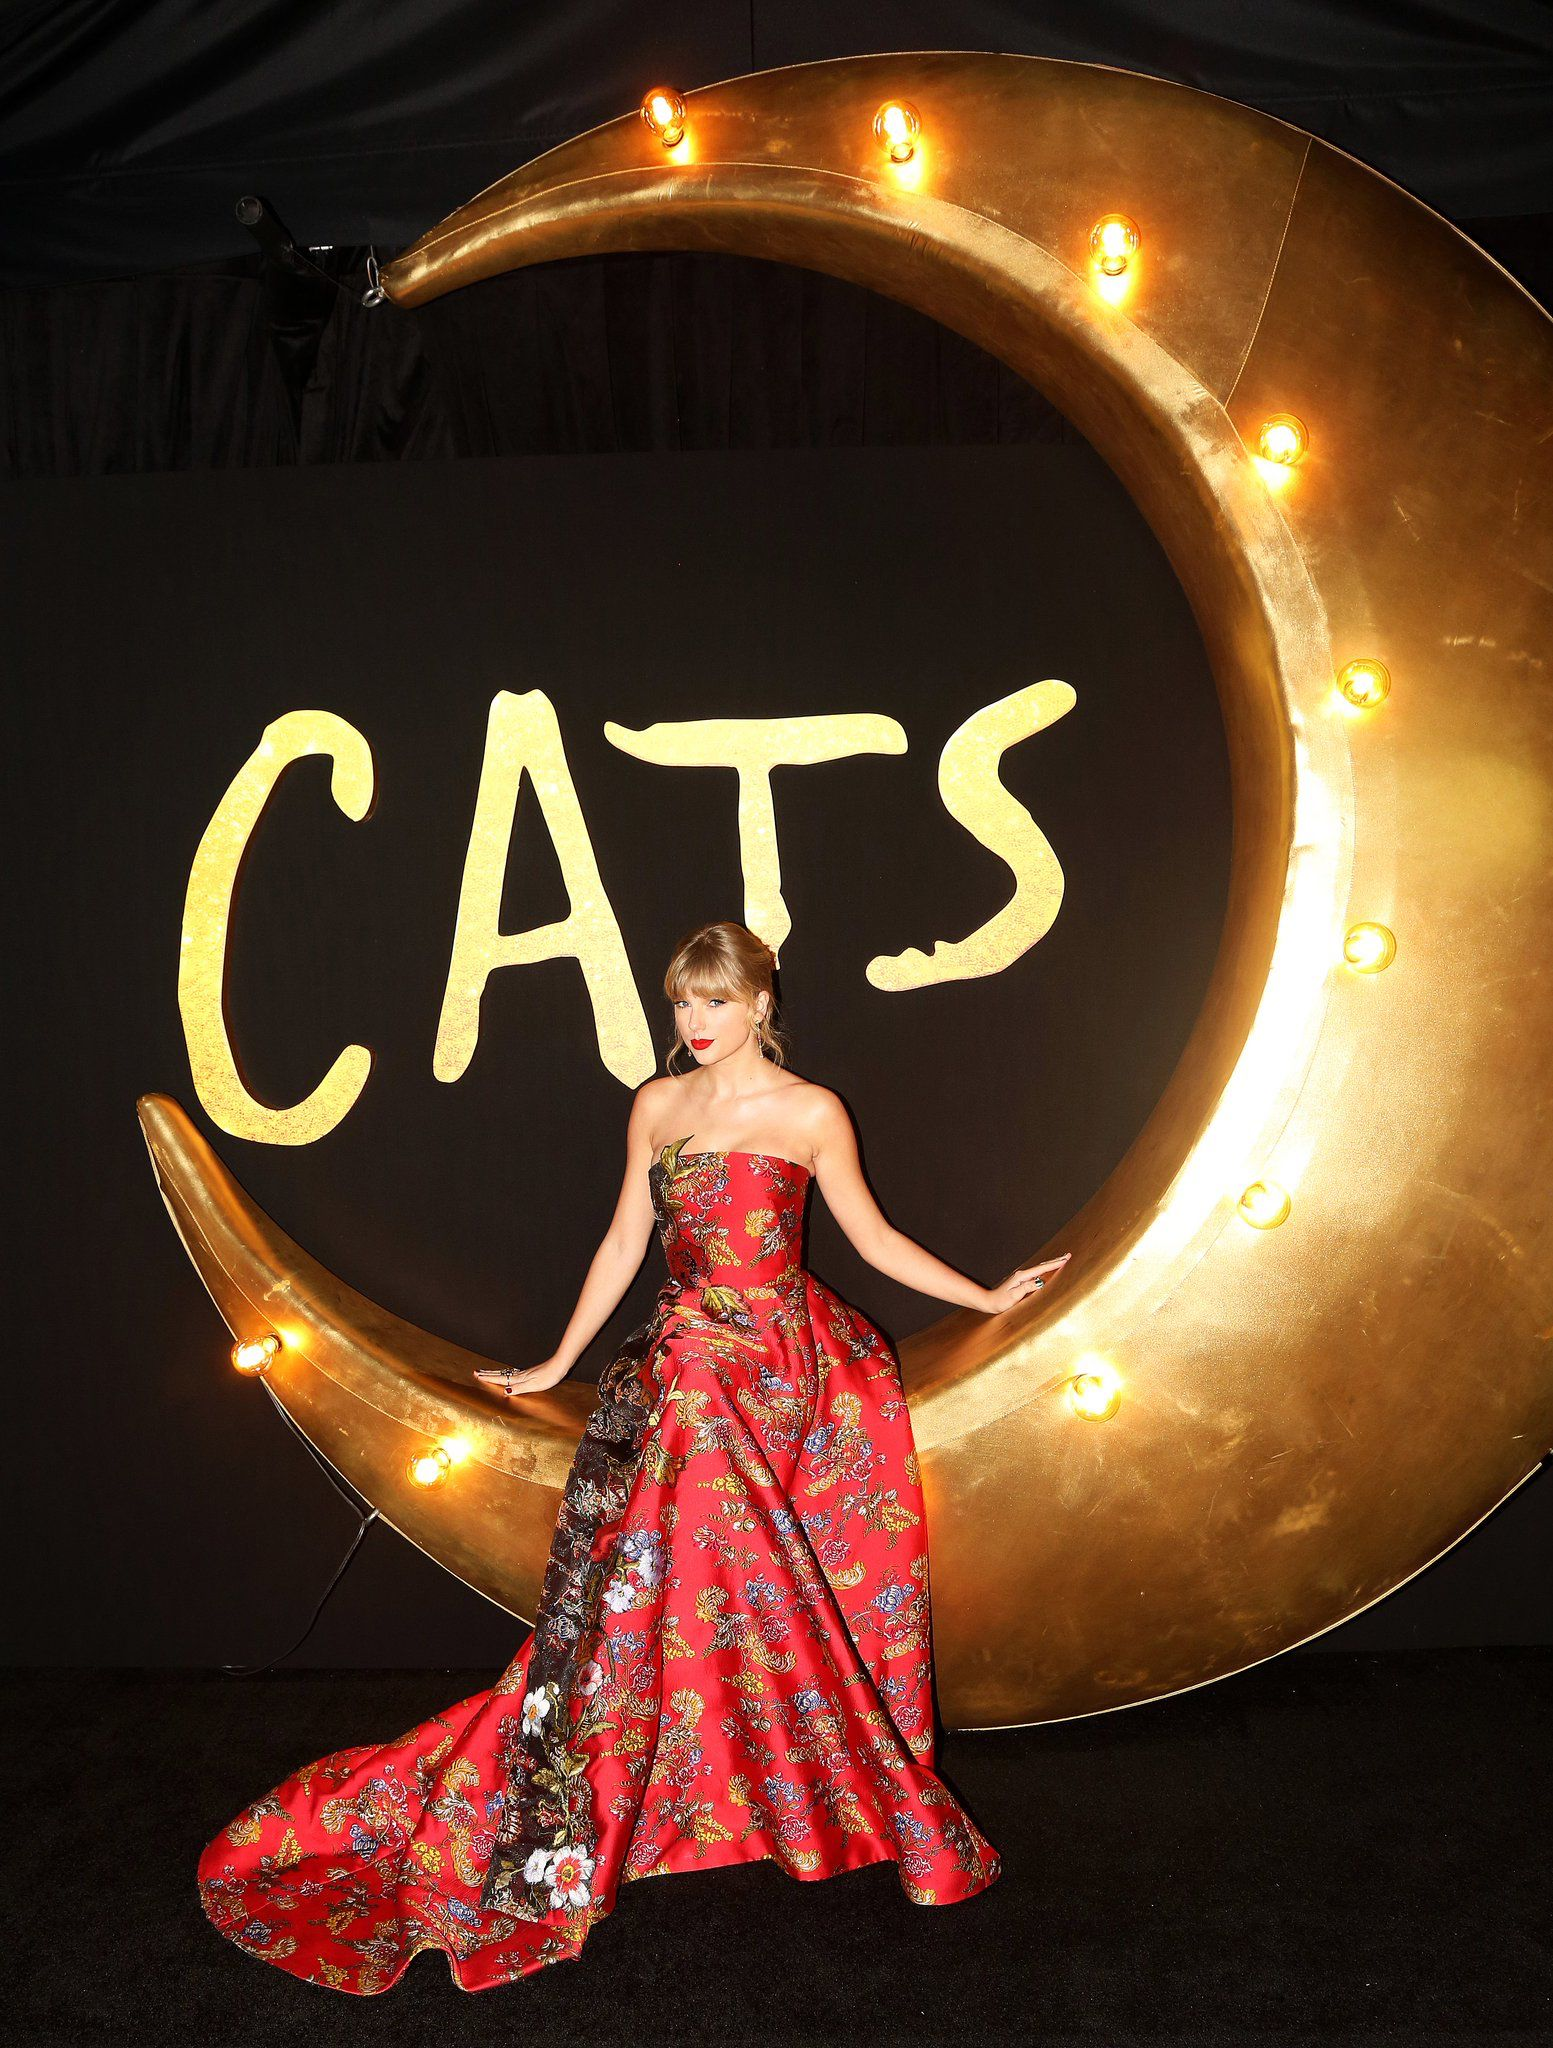 Cats premiere in 2020 Taylor swift pictures, Long live